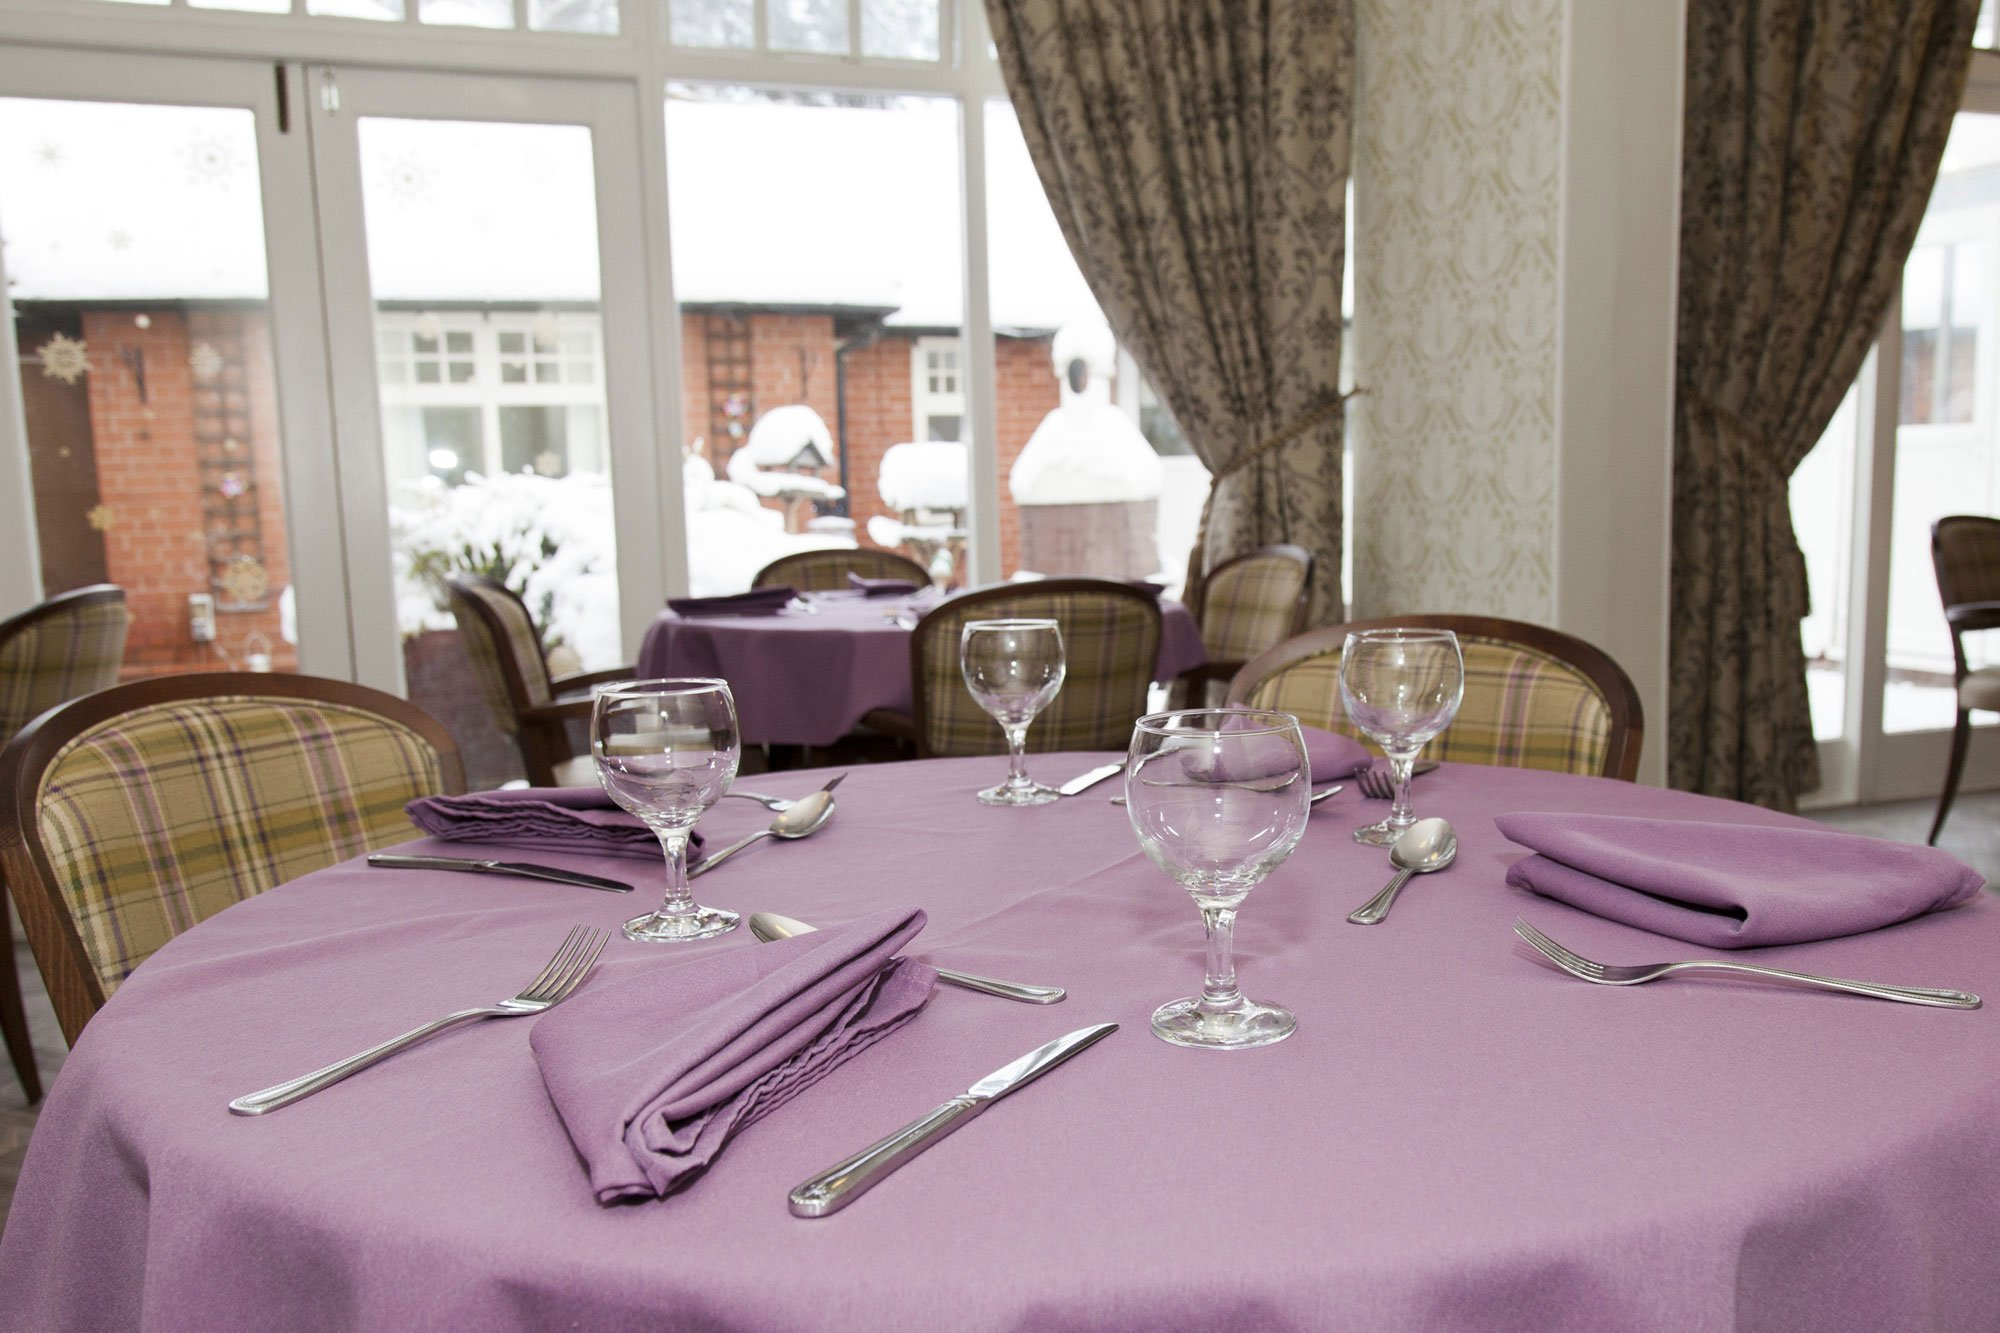 dining room at Willow Grange